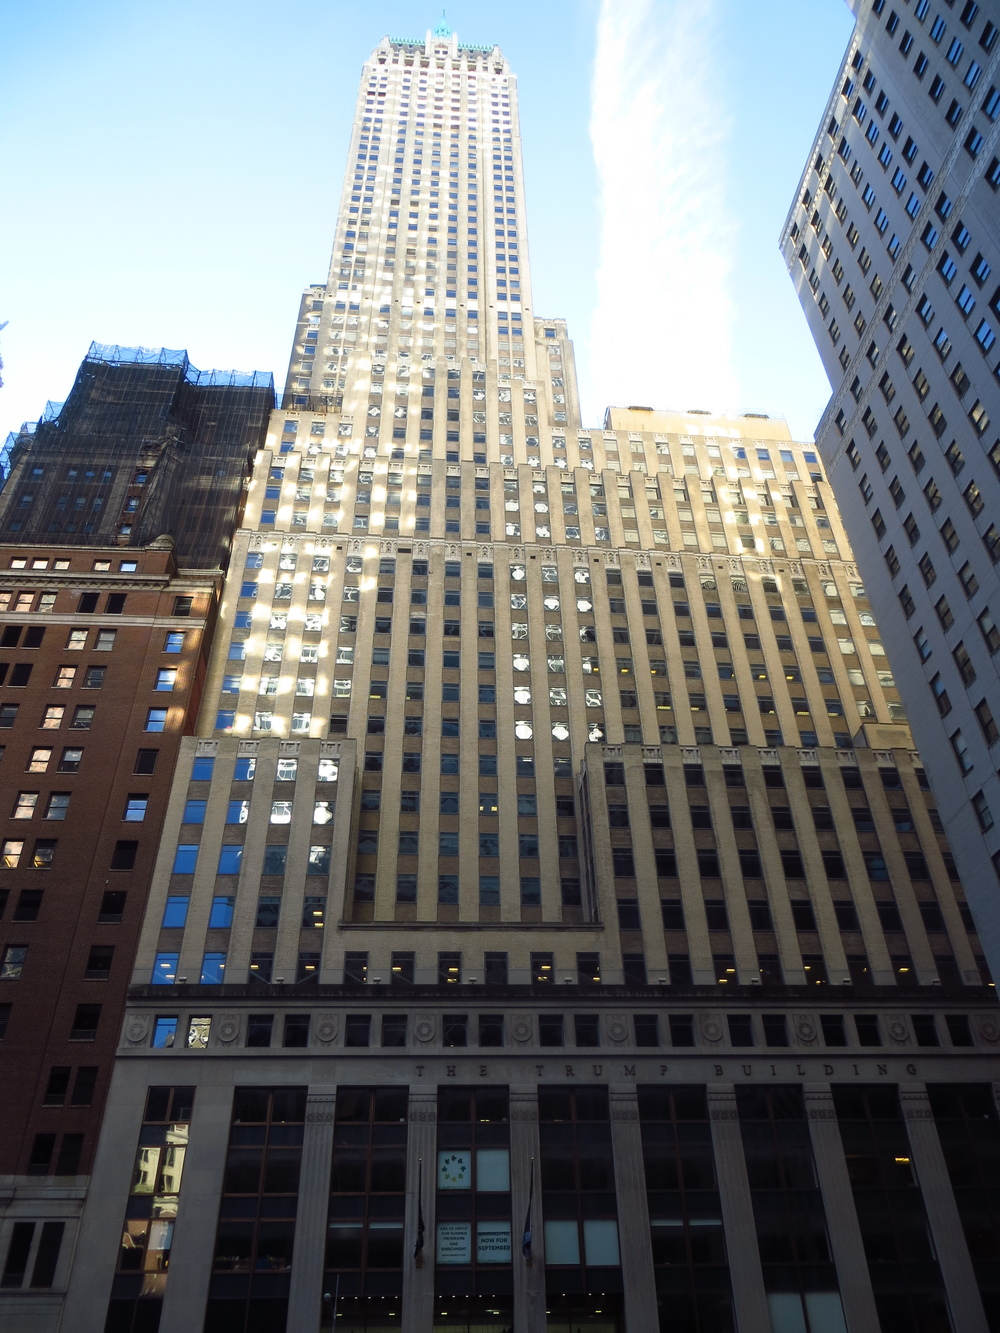 40 Wall St. (the one that lost to the Chrysler Building)